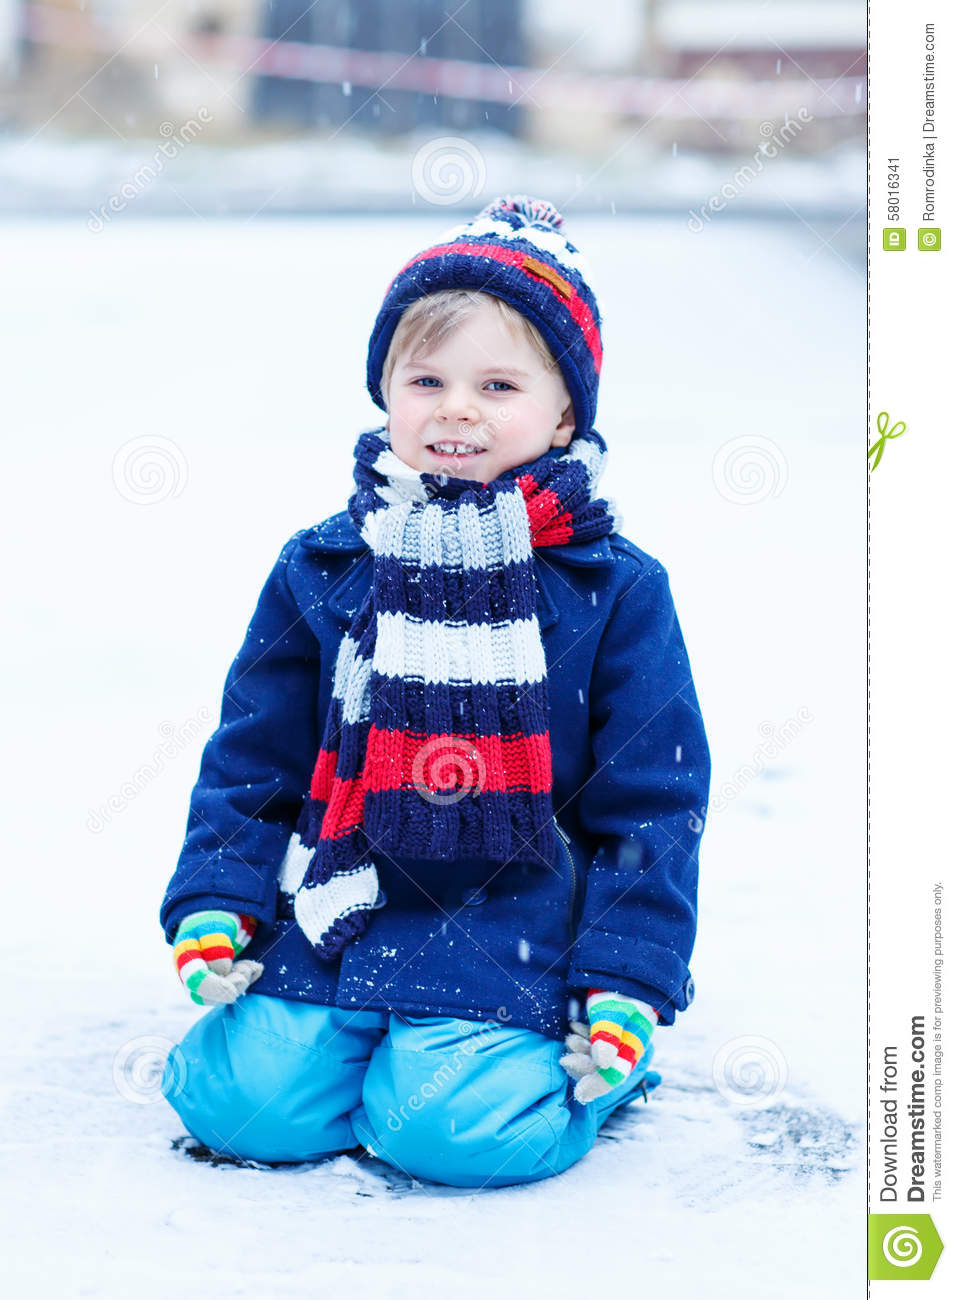 Little Boy Playing With Snow In Winter, Outdoors. Stock ...